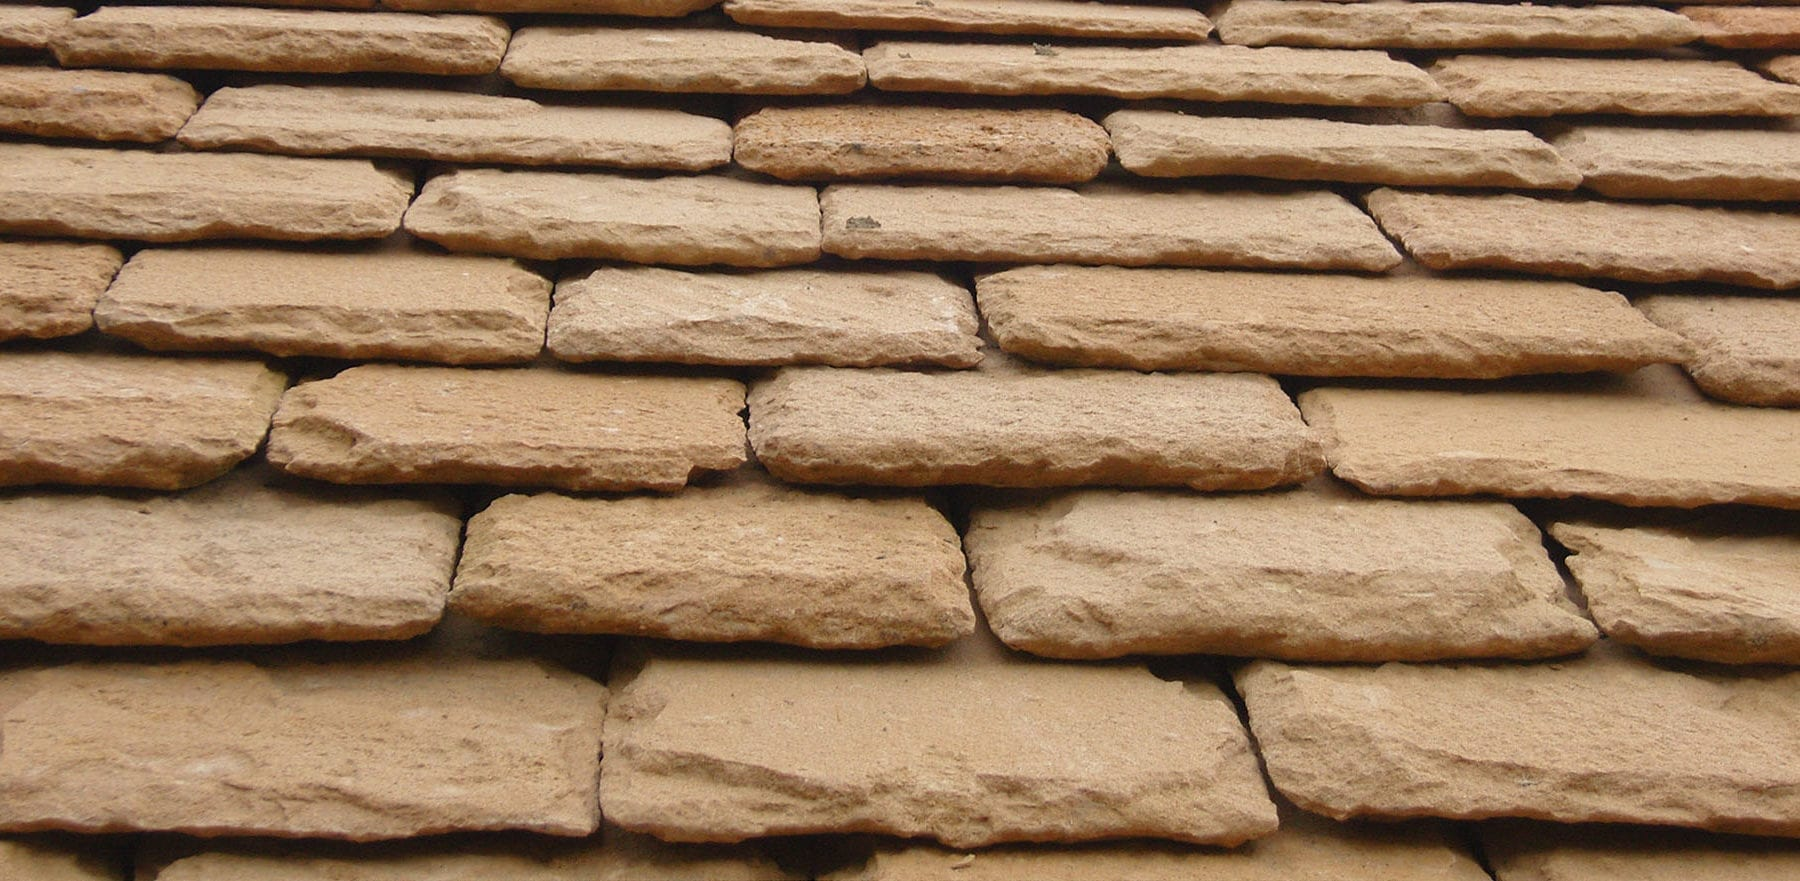 Lifestiles - Natural Stone Roof Tiles - Stroud, England 6